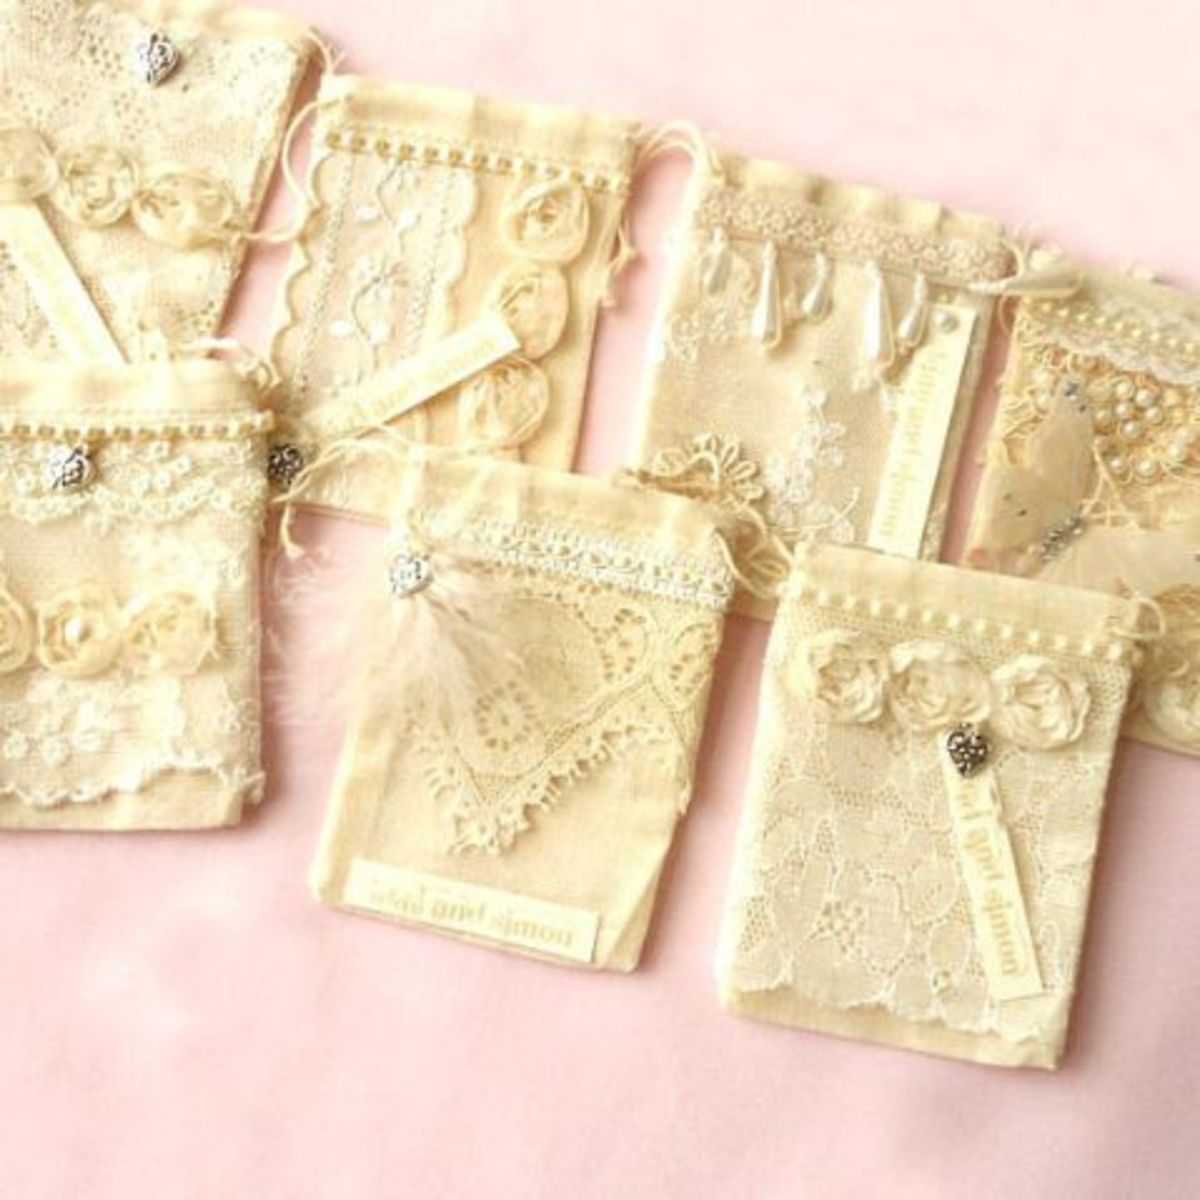 Lace wedding favor bags